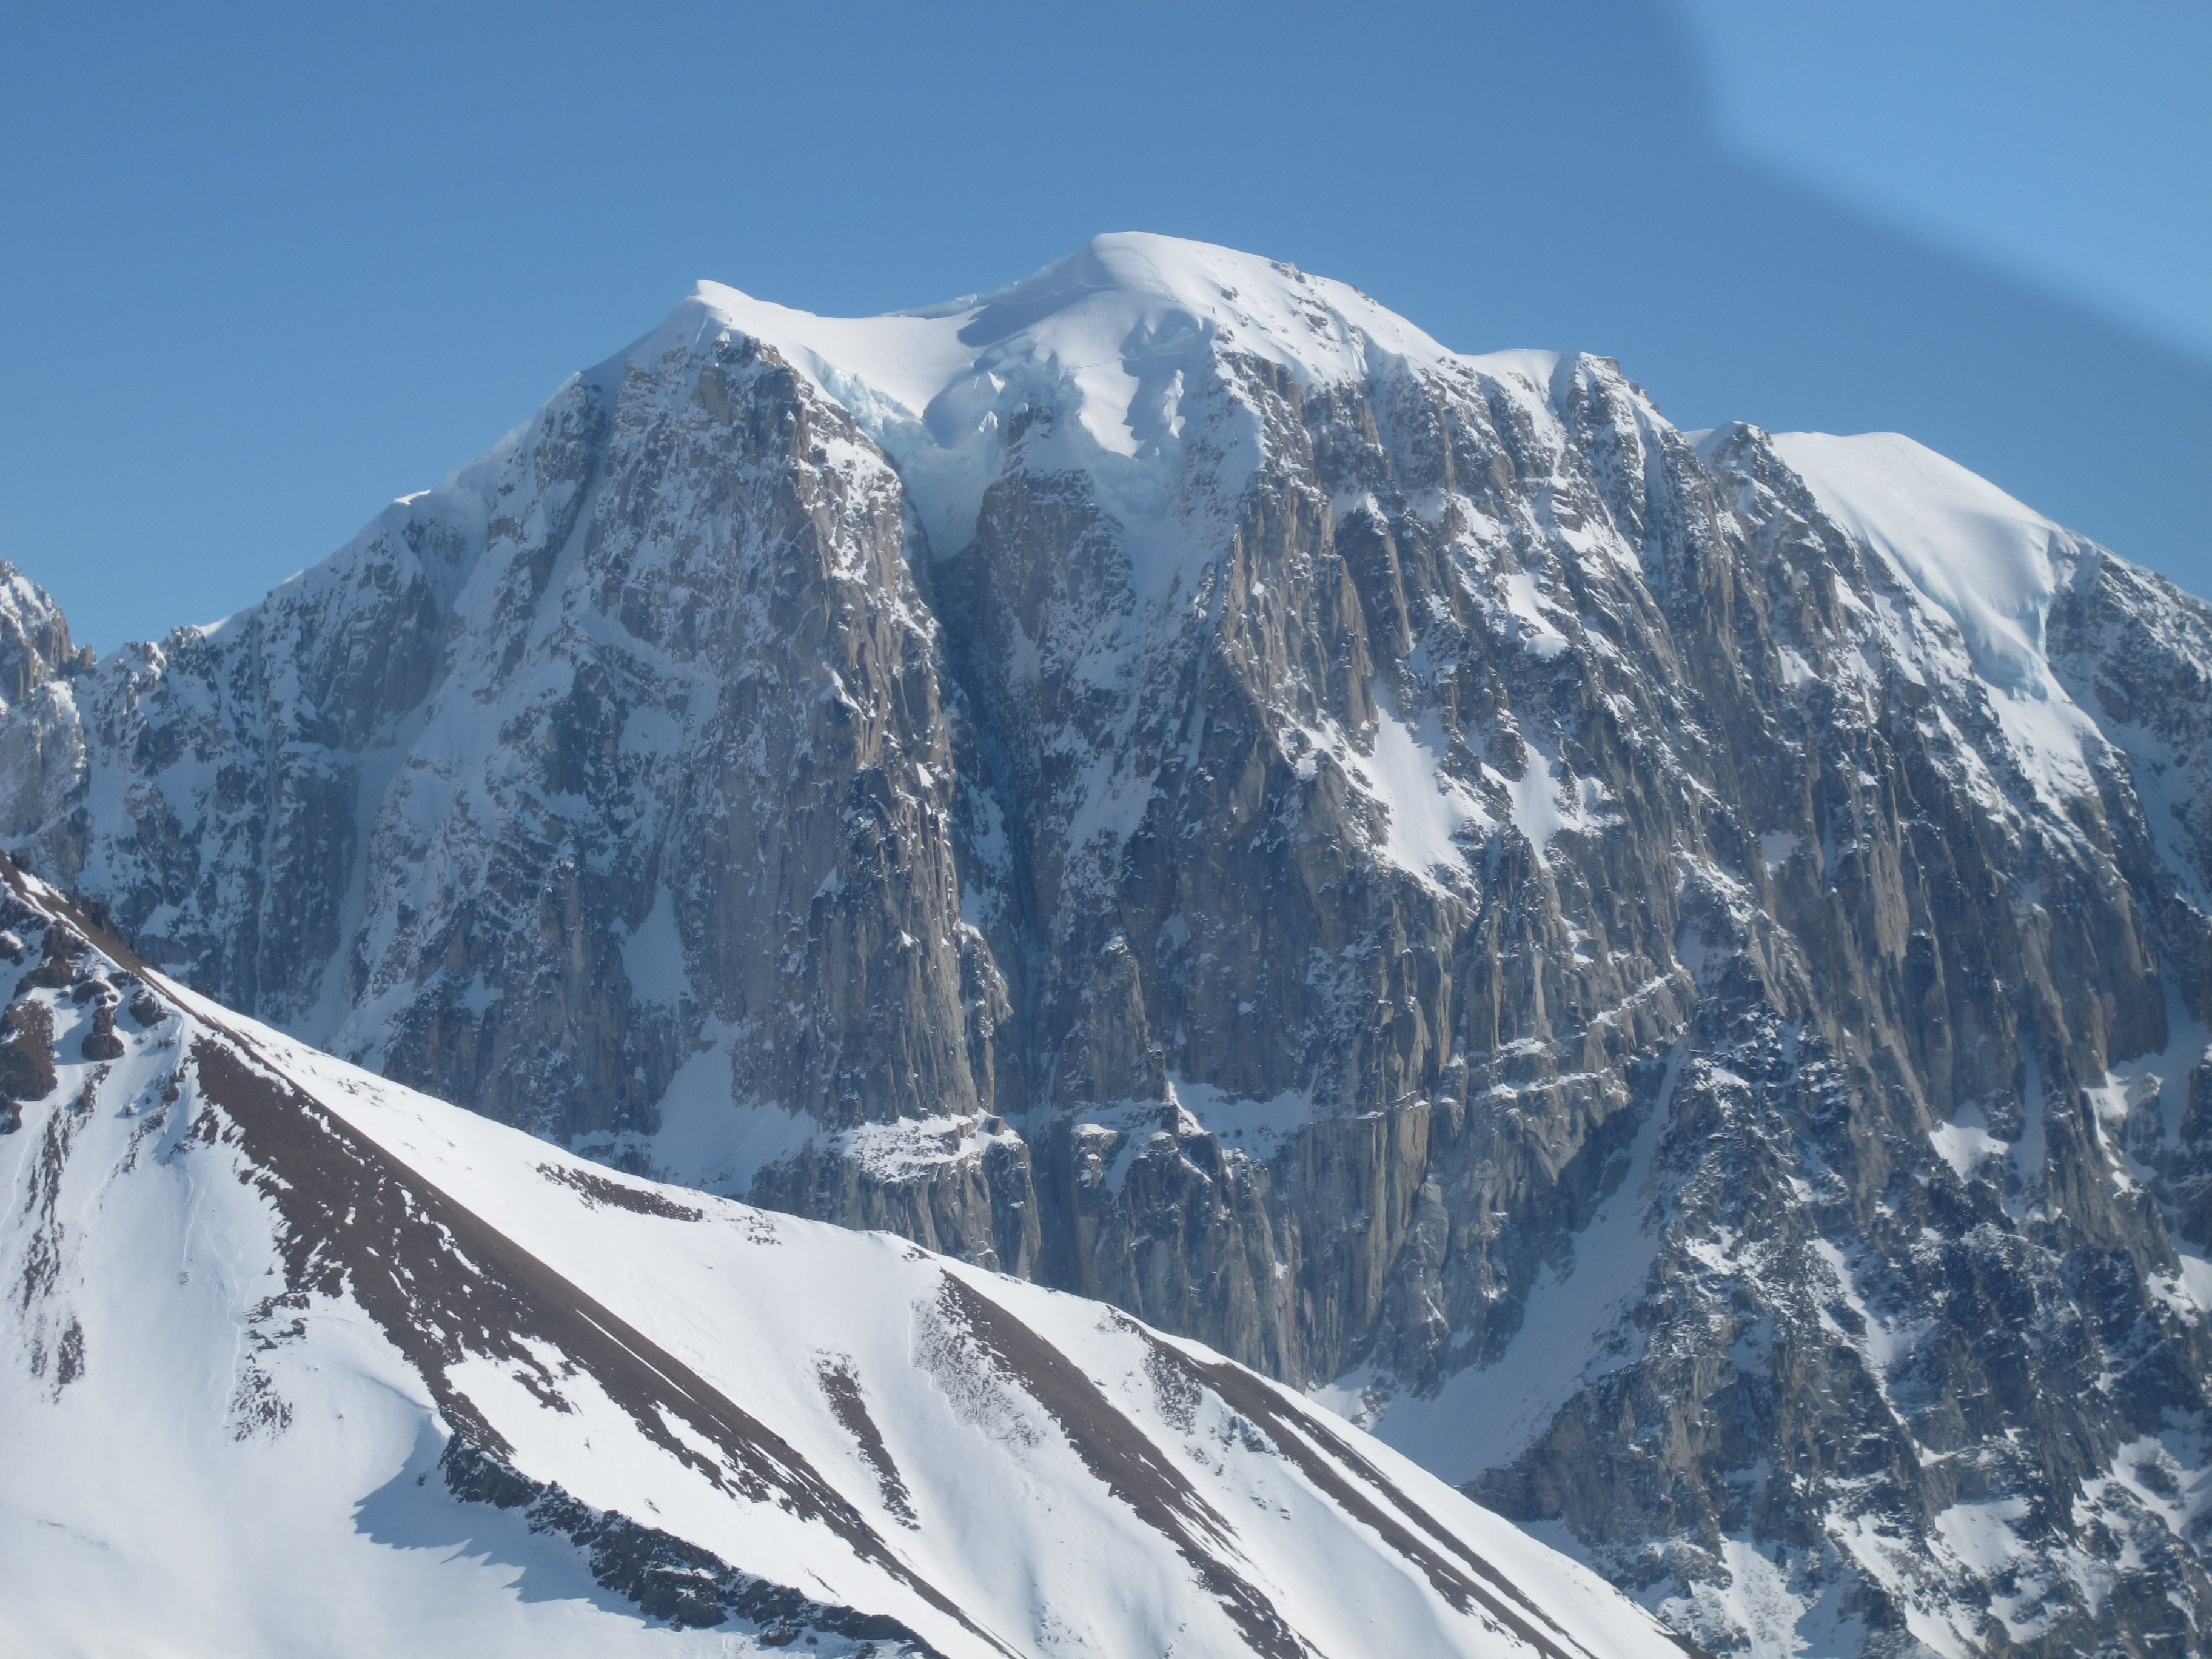 The unclimbed, ca 3,700-foot north face of Titanic (ca 9,300') on the left and the now climbed west face on the right. Fred Beckey and team made the peak's first ascent in 1981 via the east face.